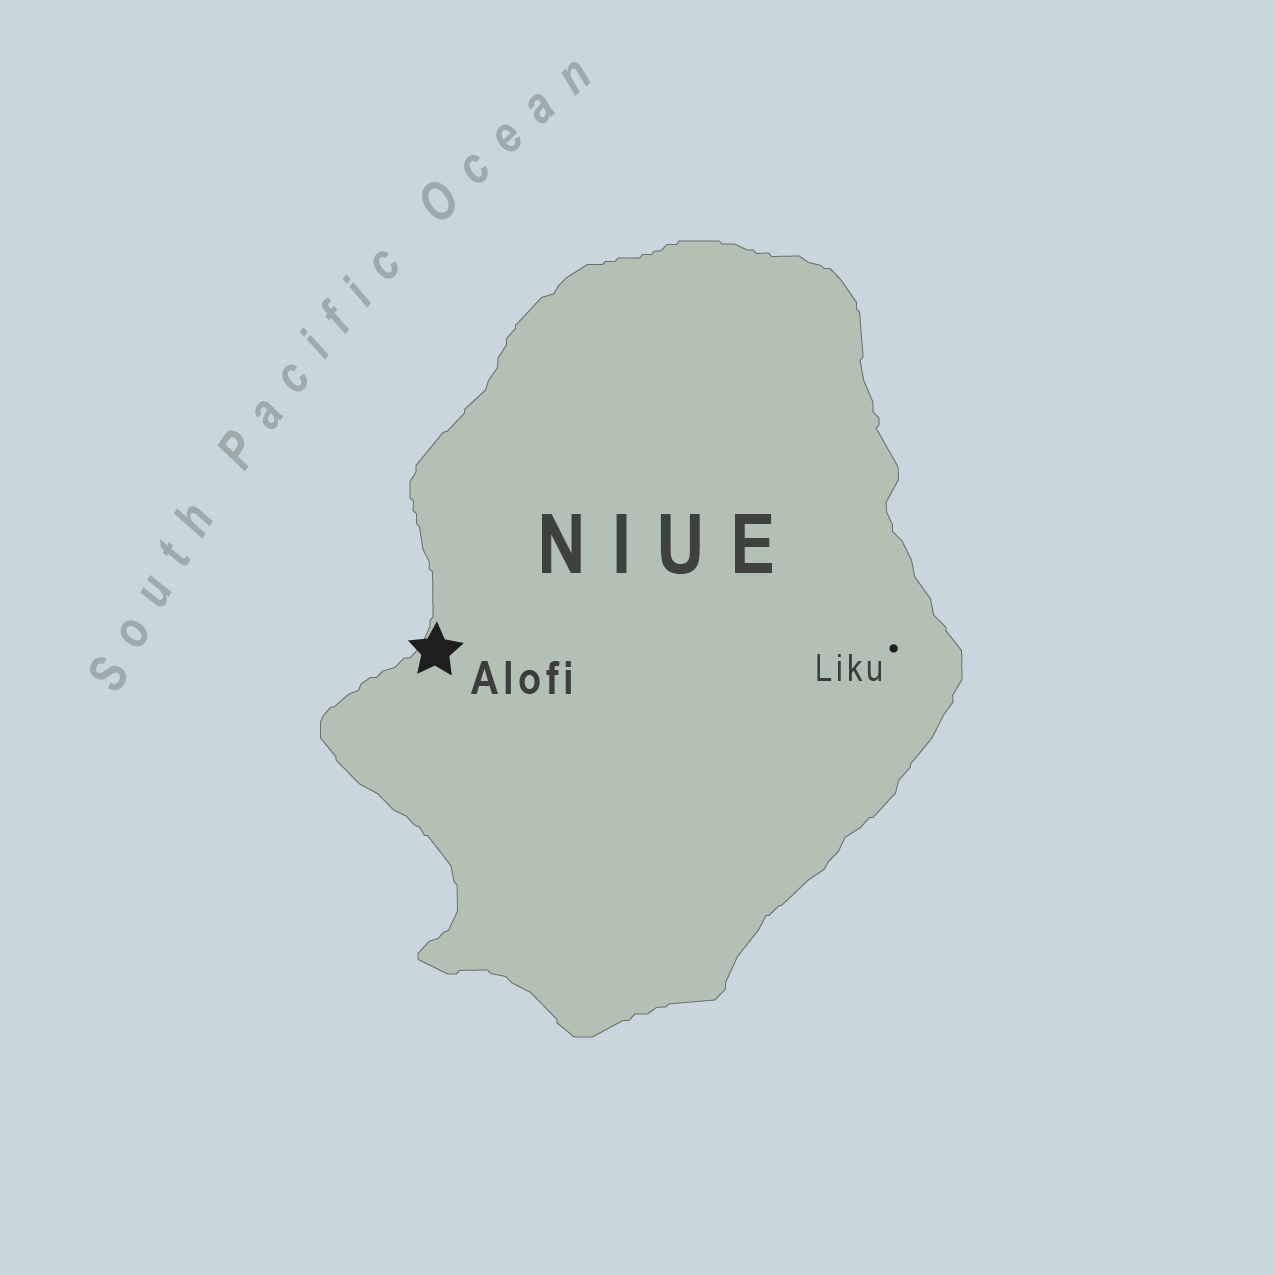 Health Information For Travelers To Niue New Zealand